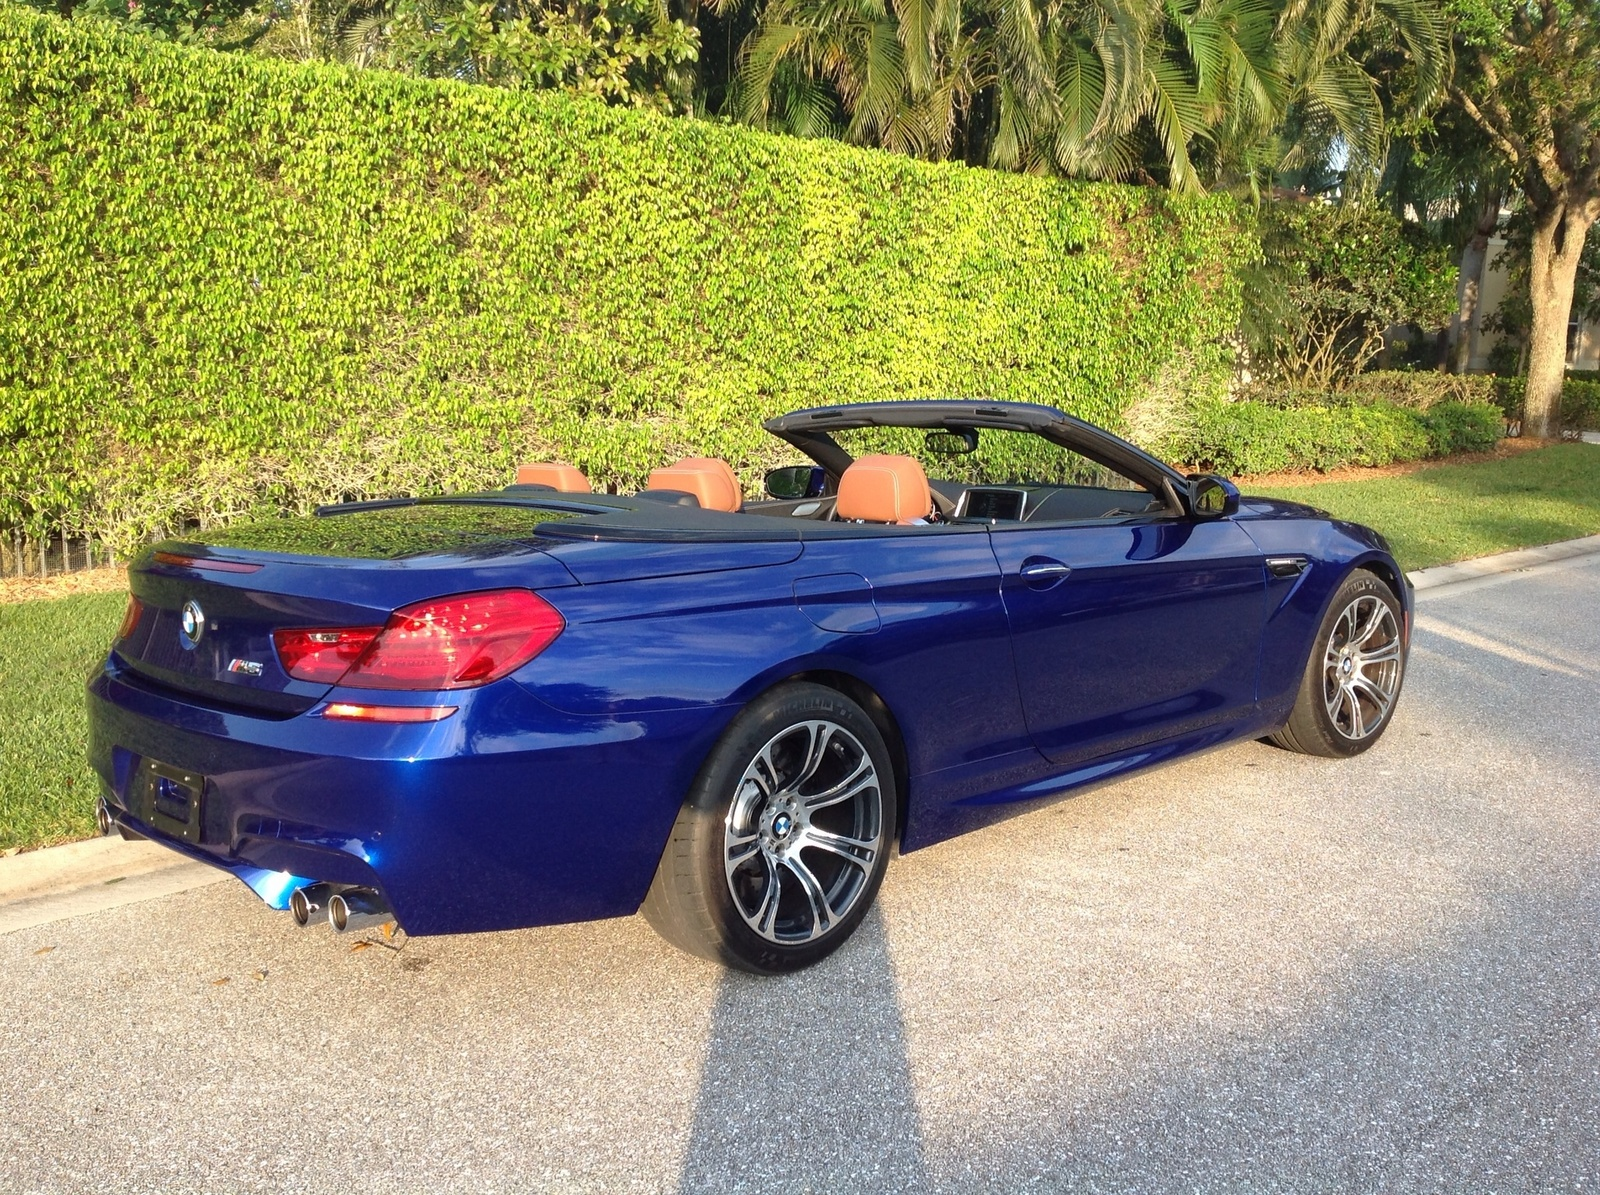 2014 Bmw M6 Rebuilt Salvage For Sale: New 2014 / 2015 BMW M6 For Sale